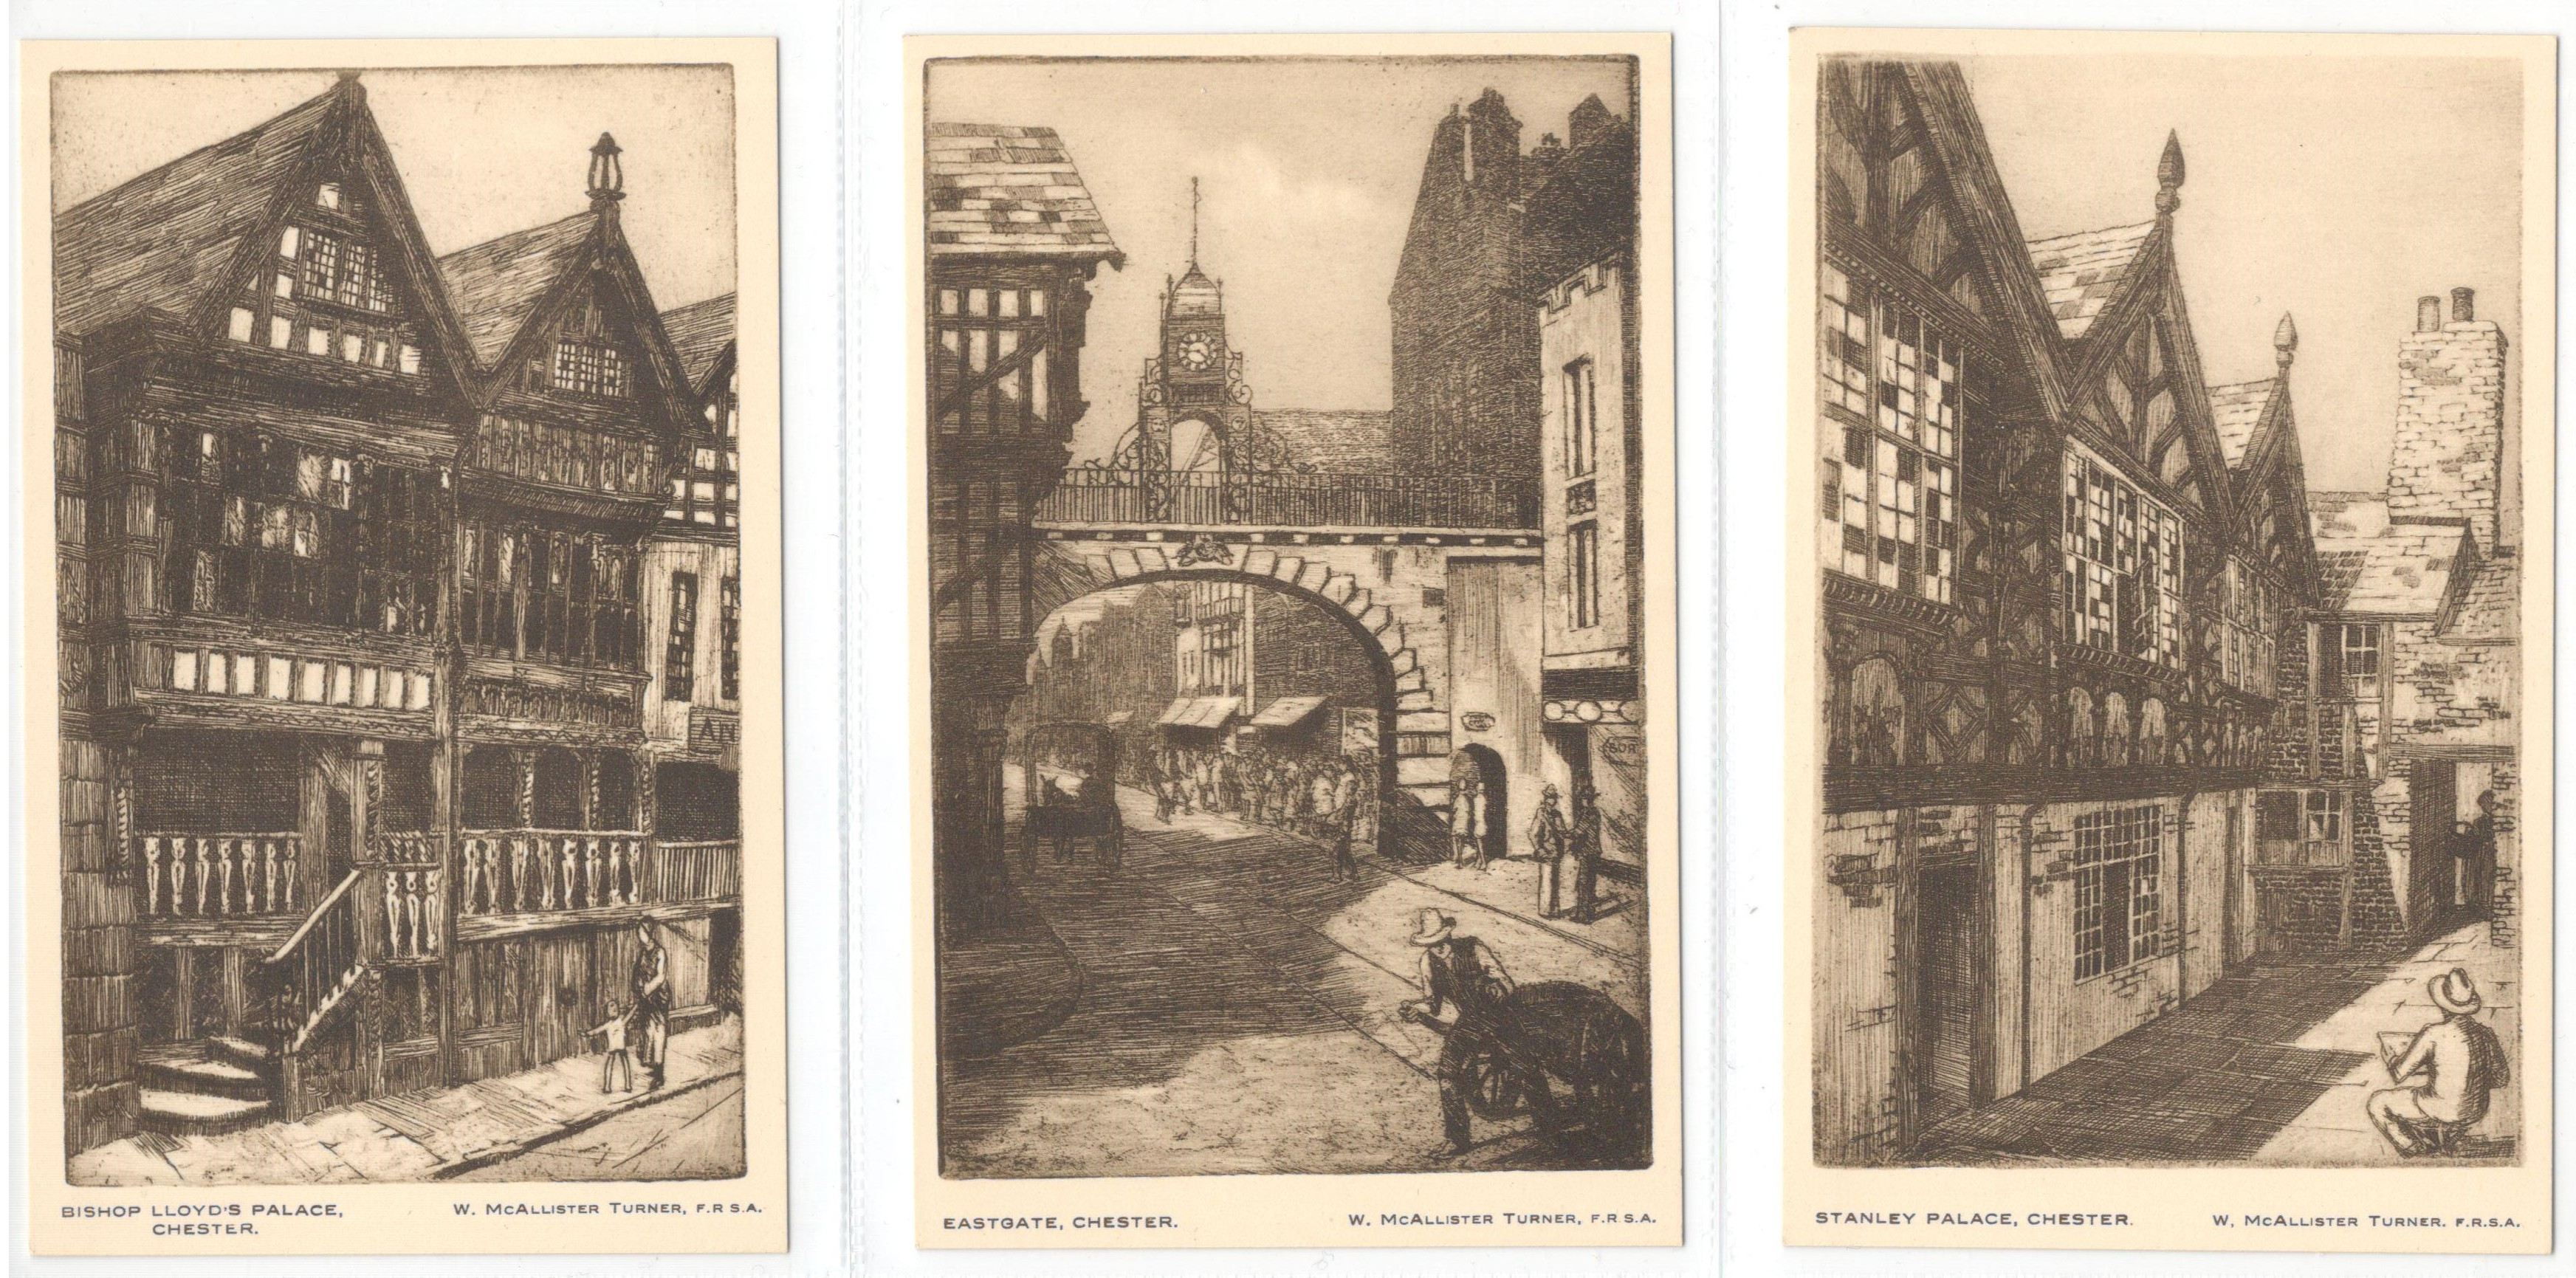 SET OF SIX CHESTER POSTCARDS - Image 2 of 3